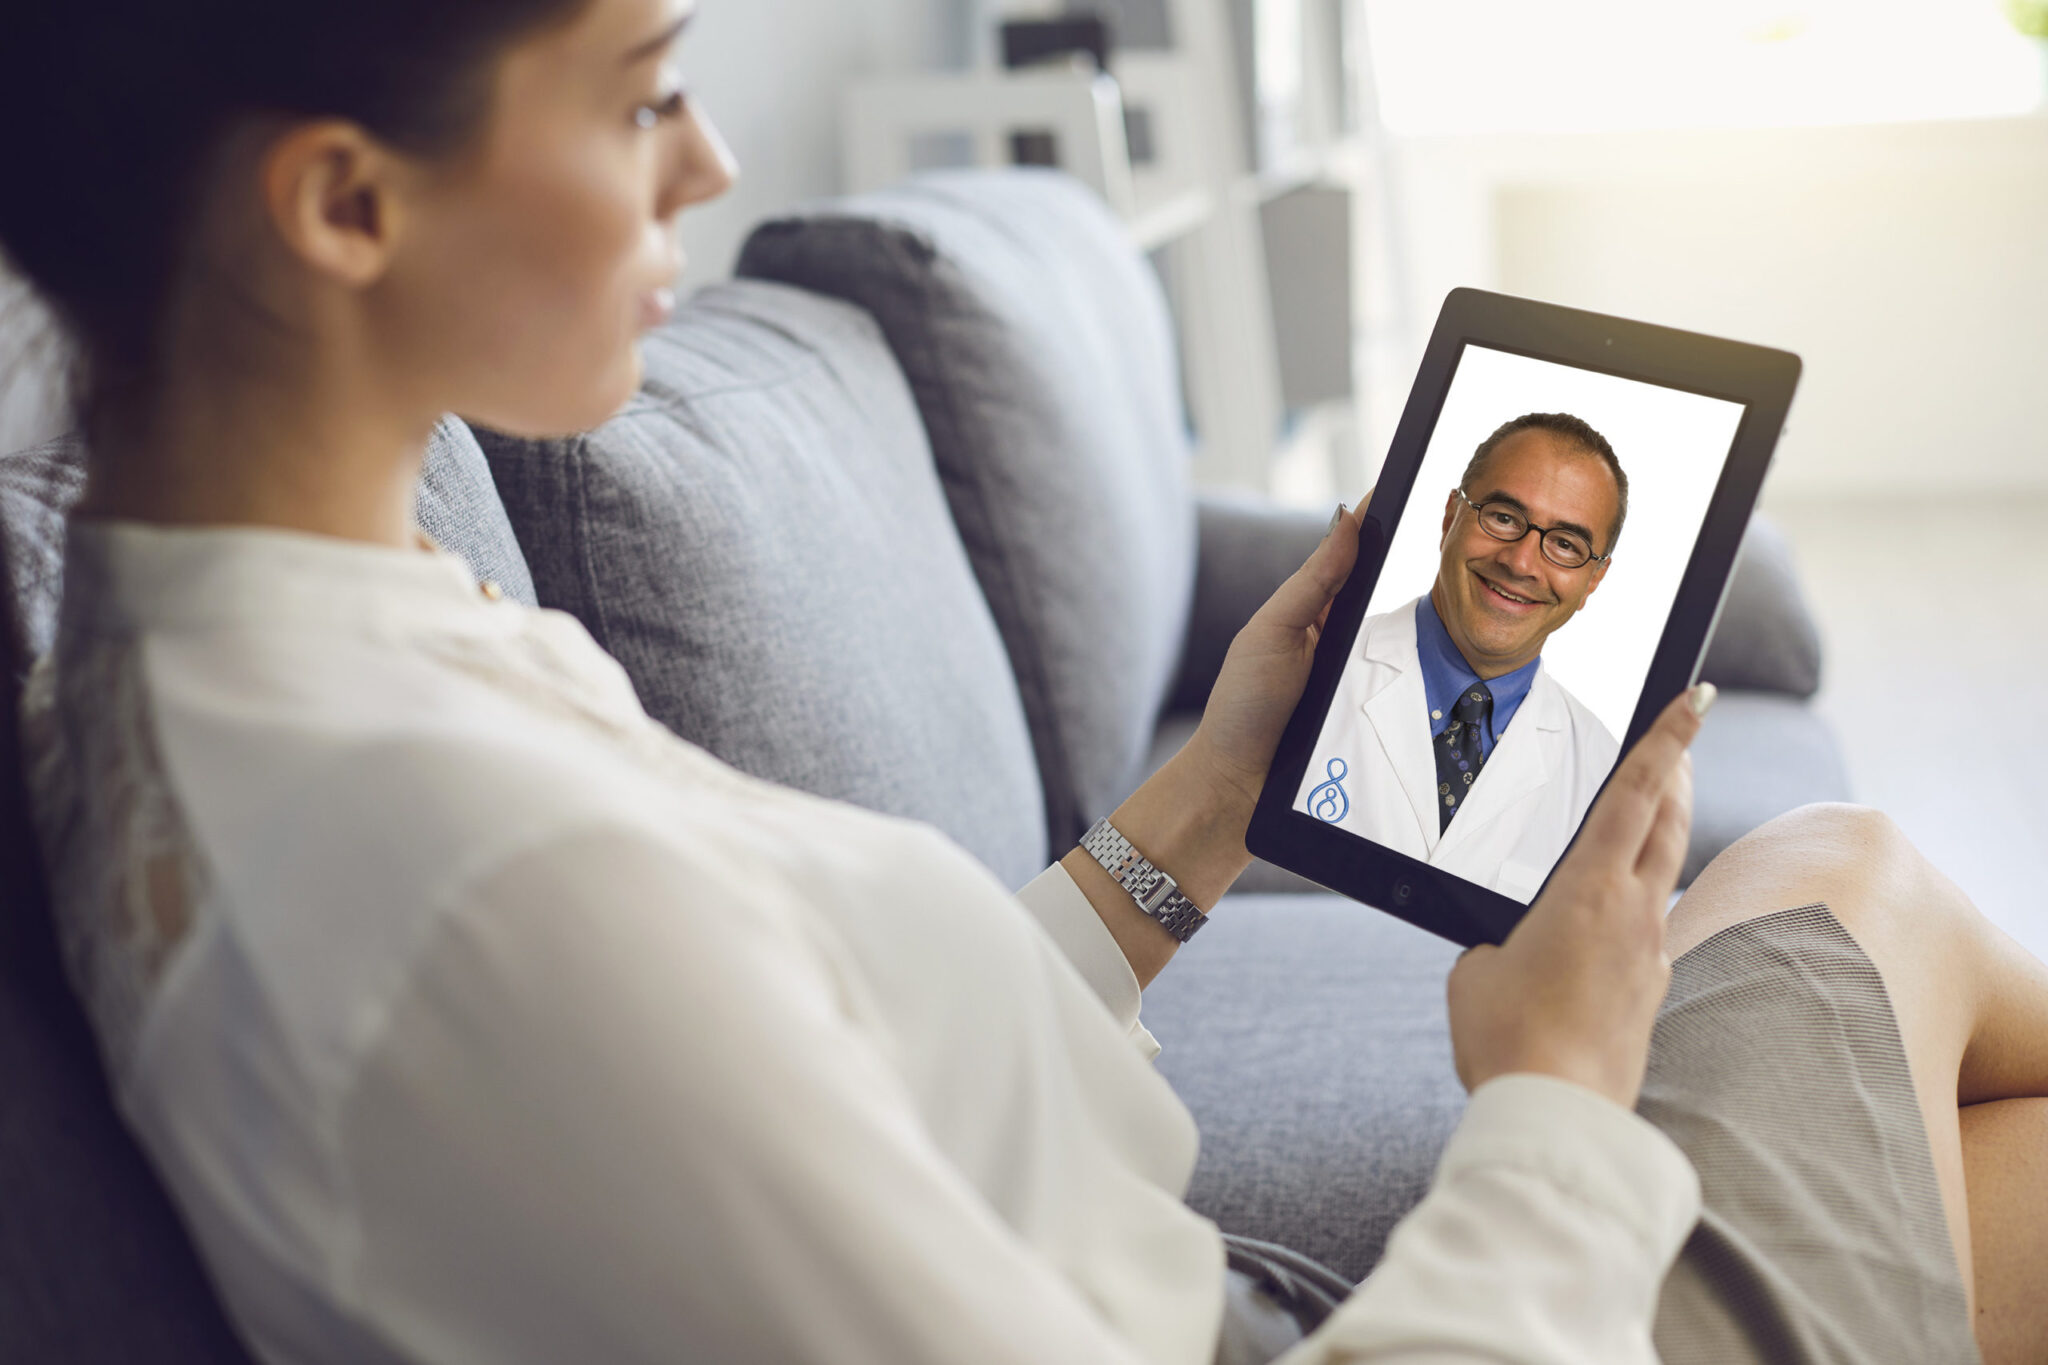 What To Expect in a Virtual Appointment with a Fertility Doctor